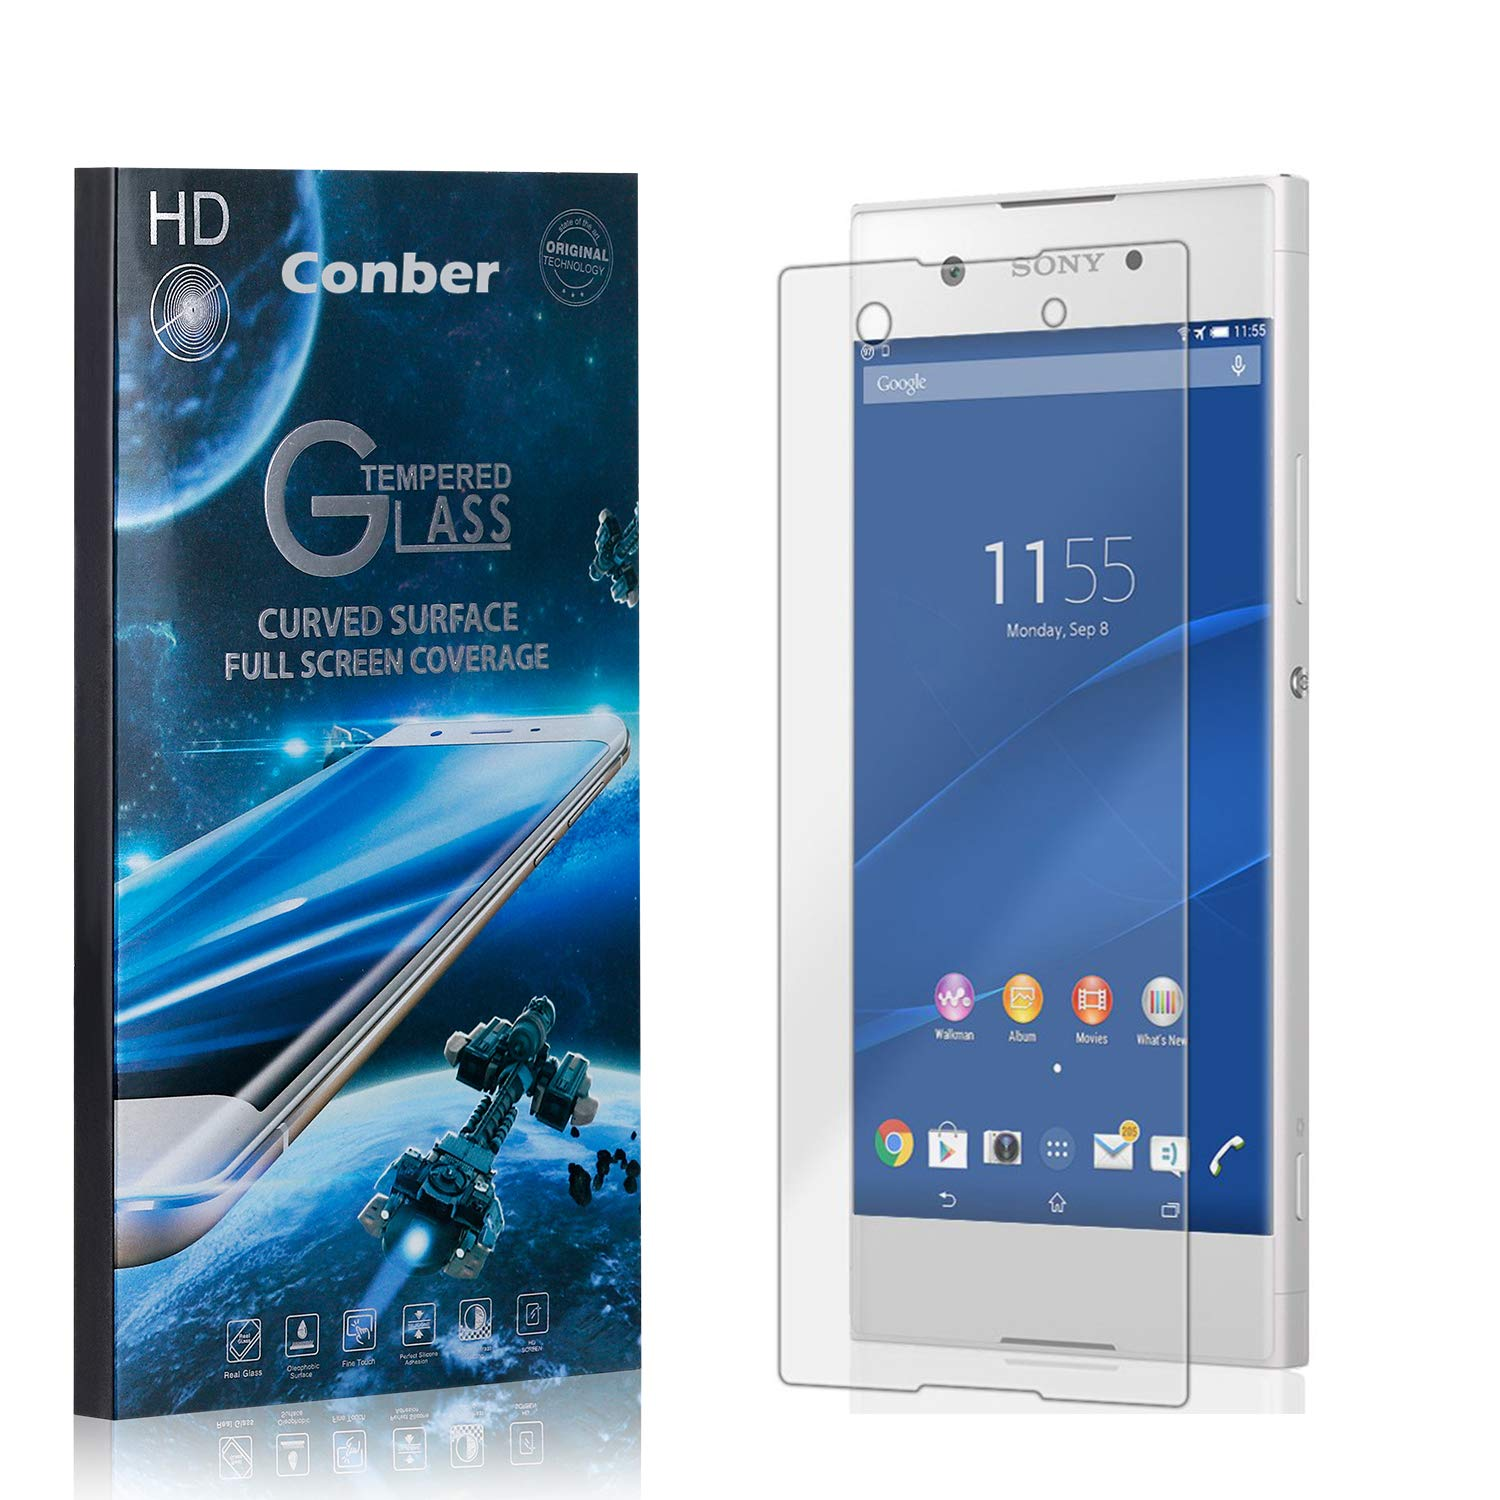 Conber 3 Shipping included Pack Screen Protector Oklahoma City Mall Xperia Scratch-R for XA1 Sony